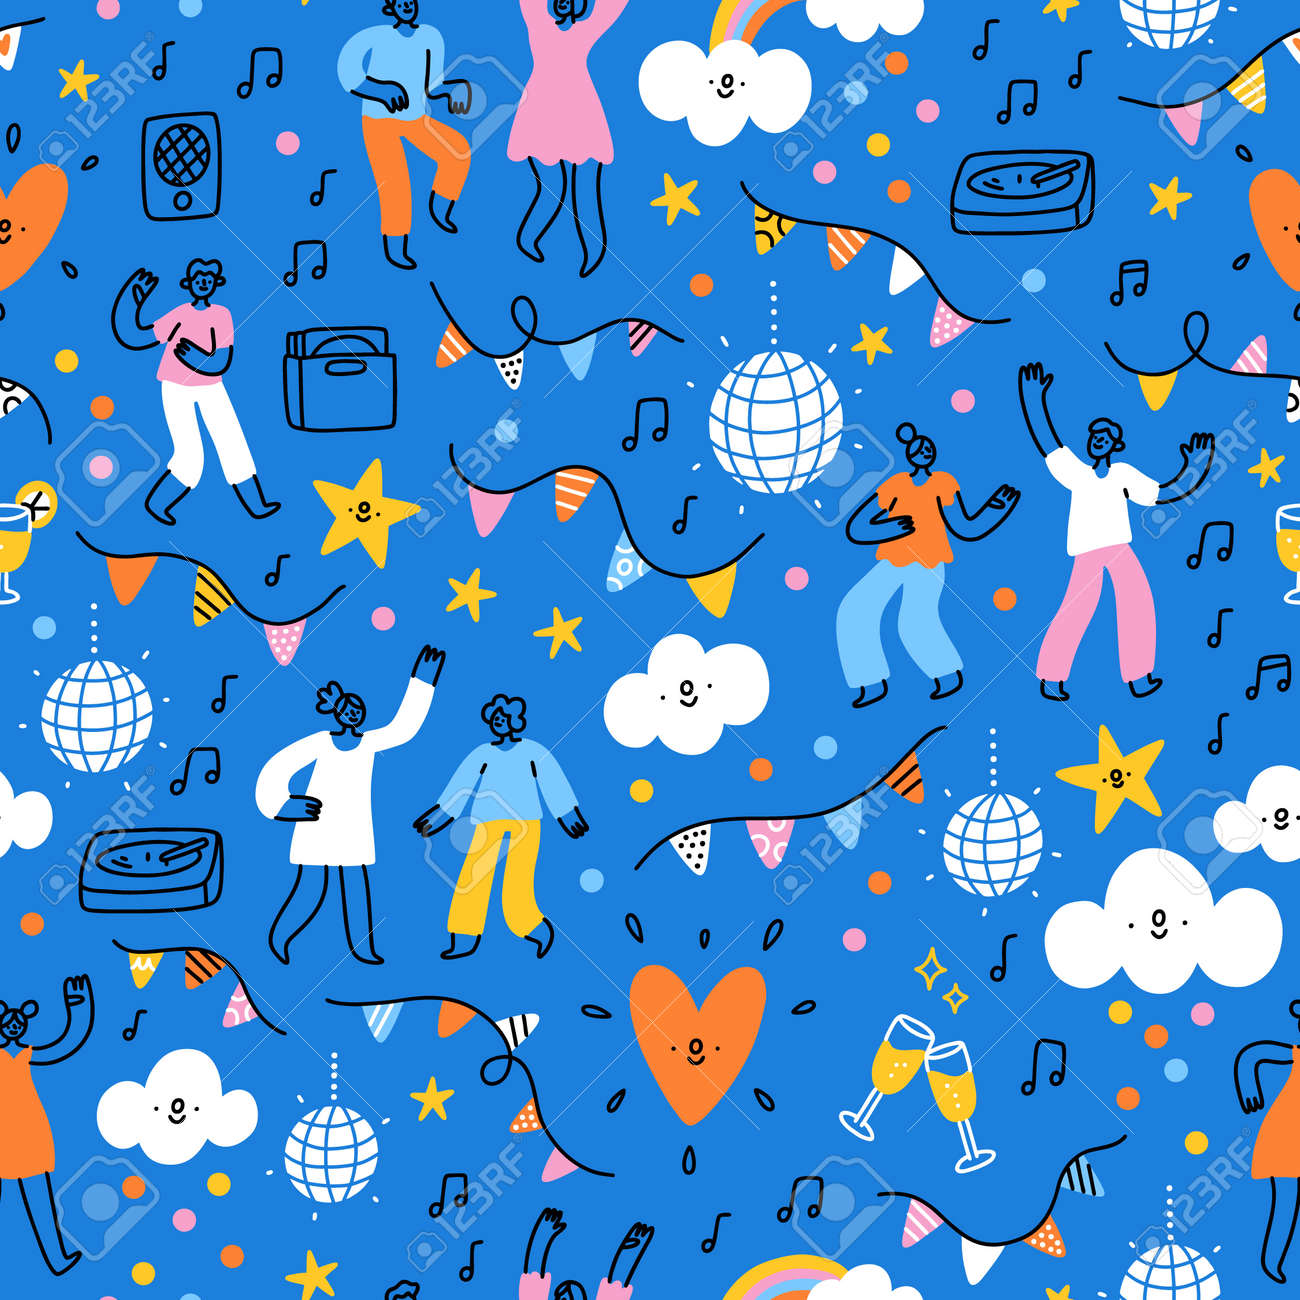 Dance party, bunting decorations, music playing, people dancing and celebrating, vector seamless pattern - 163338179